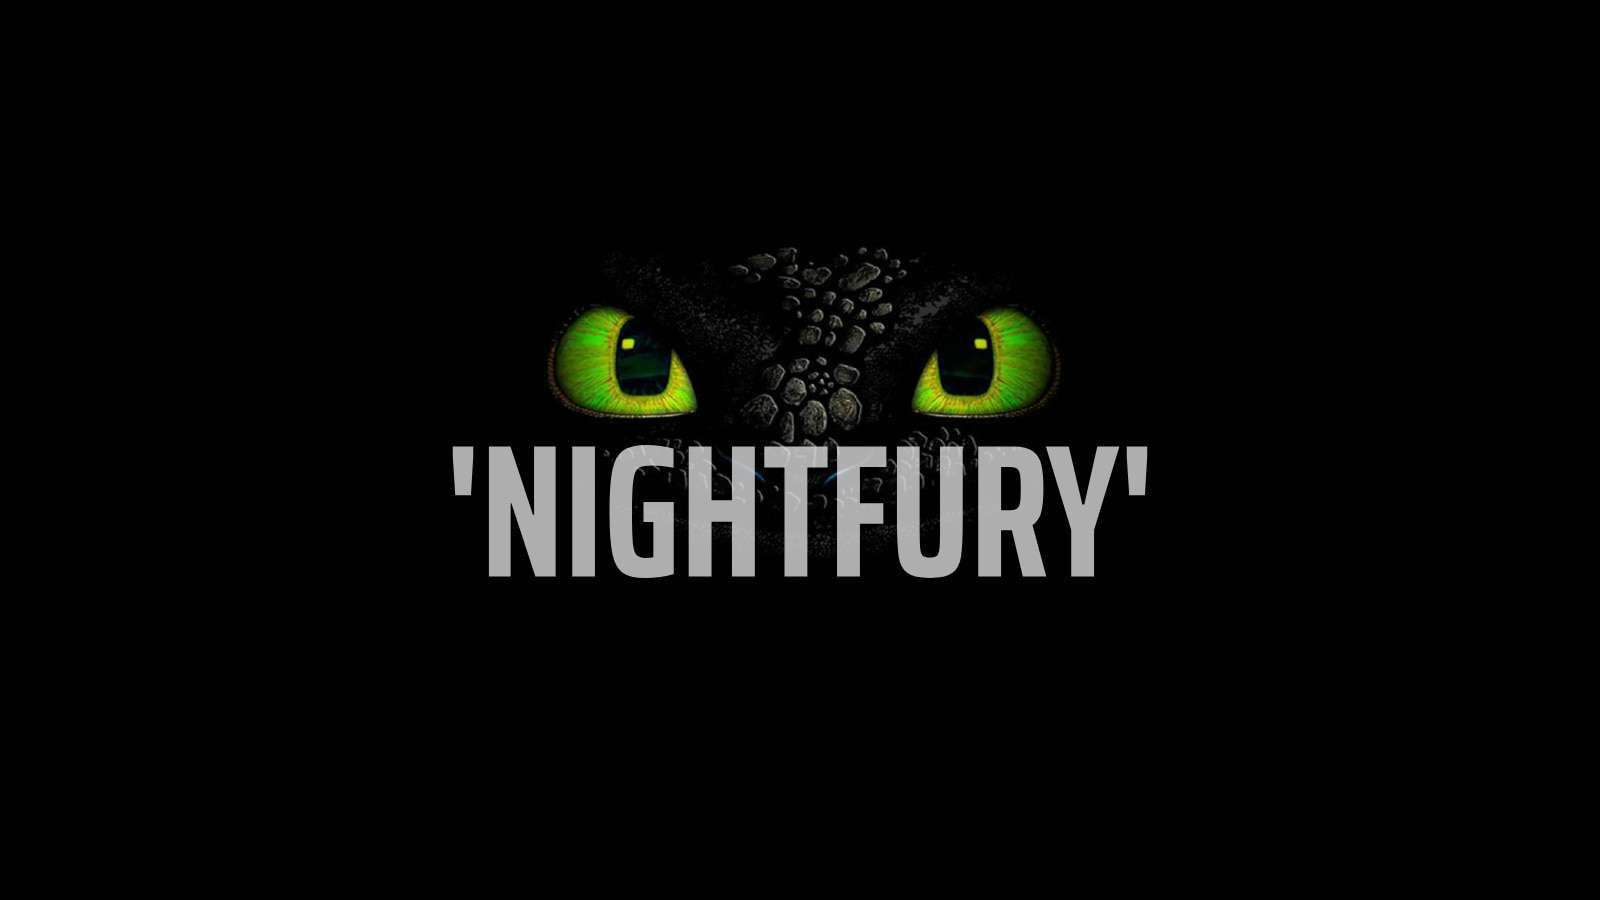 New 'Nightfury' device hints at second Samsung Galaxy Chromebook